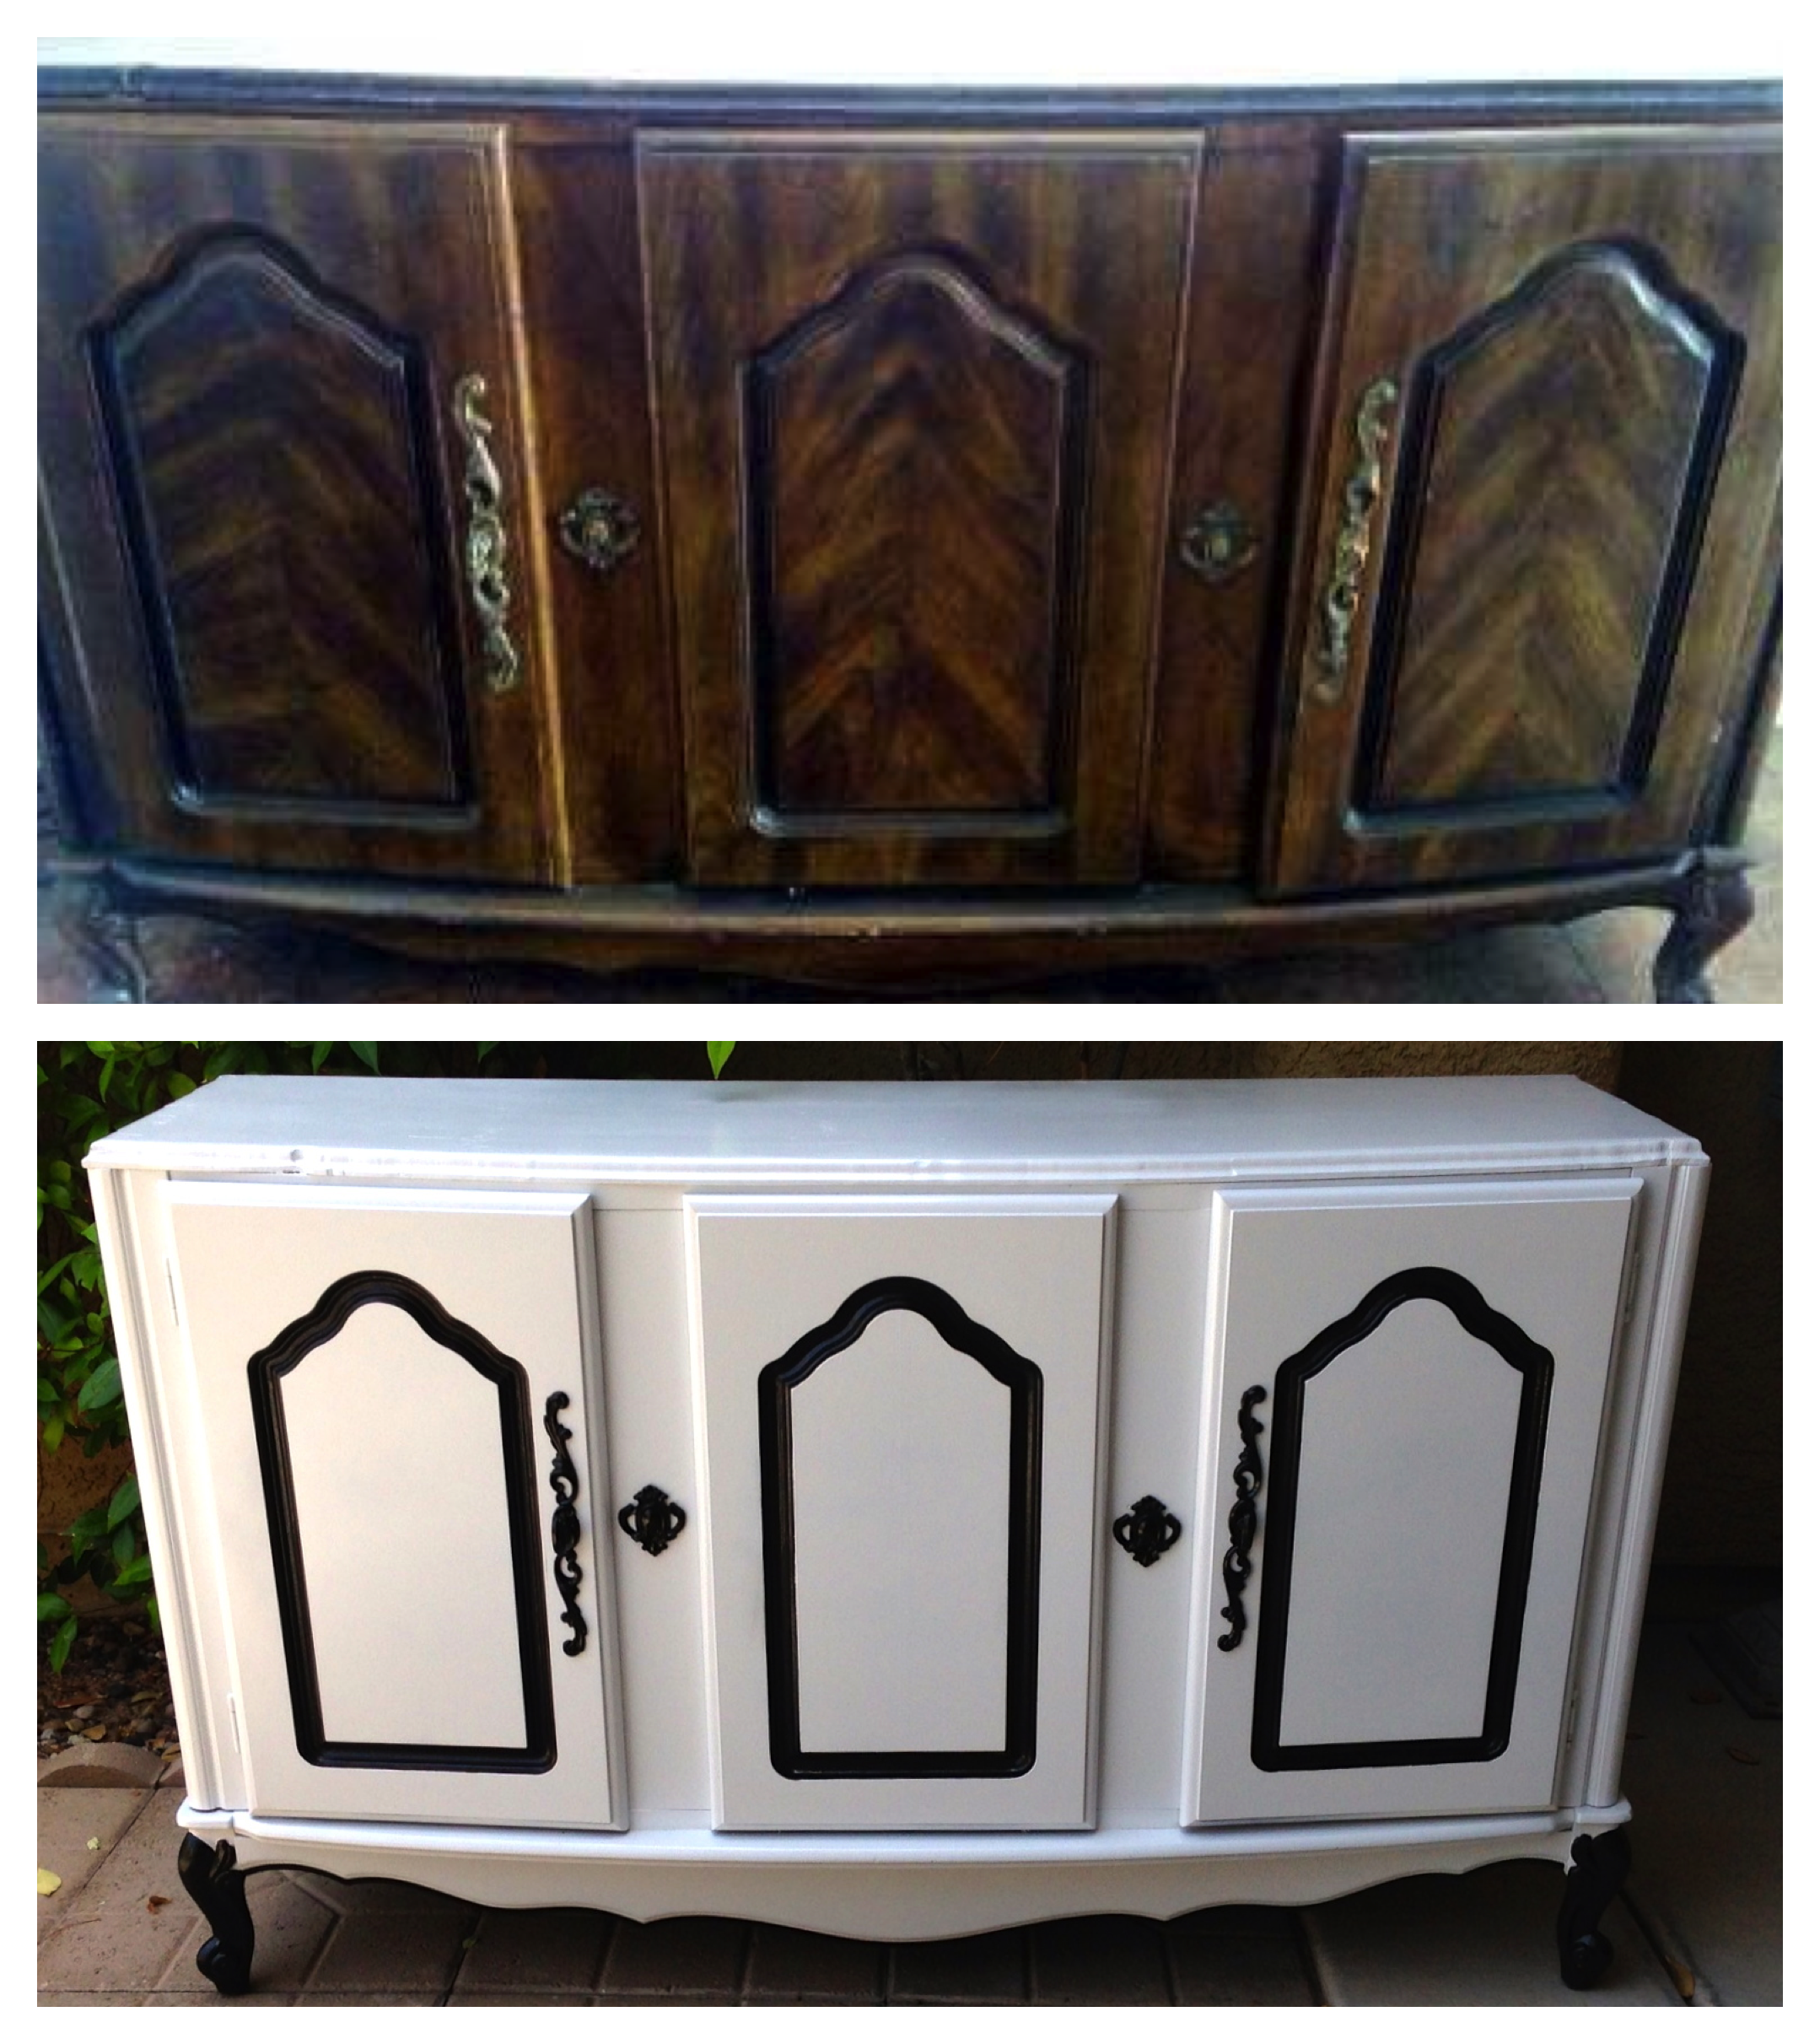 Painting furniture black before and after - Www Facebook Com Vintagekeyantiques Vintage Shabby Refinished Painted Before